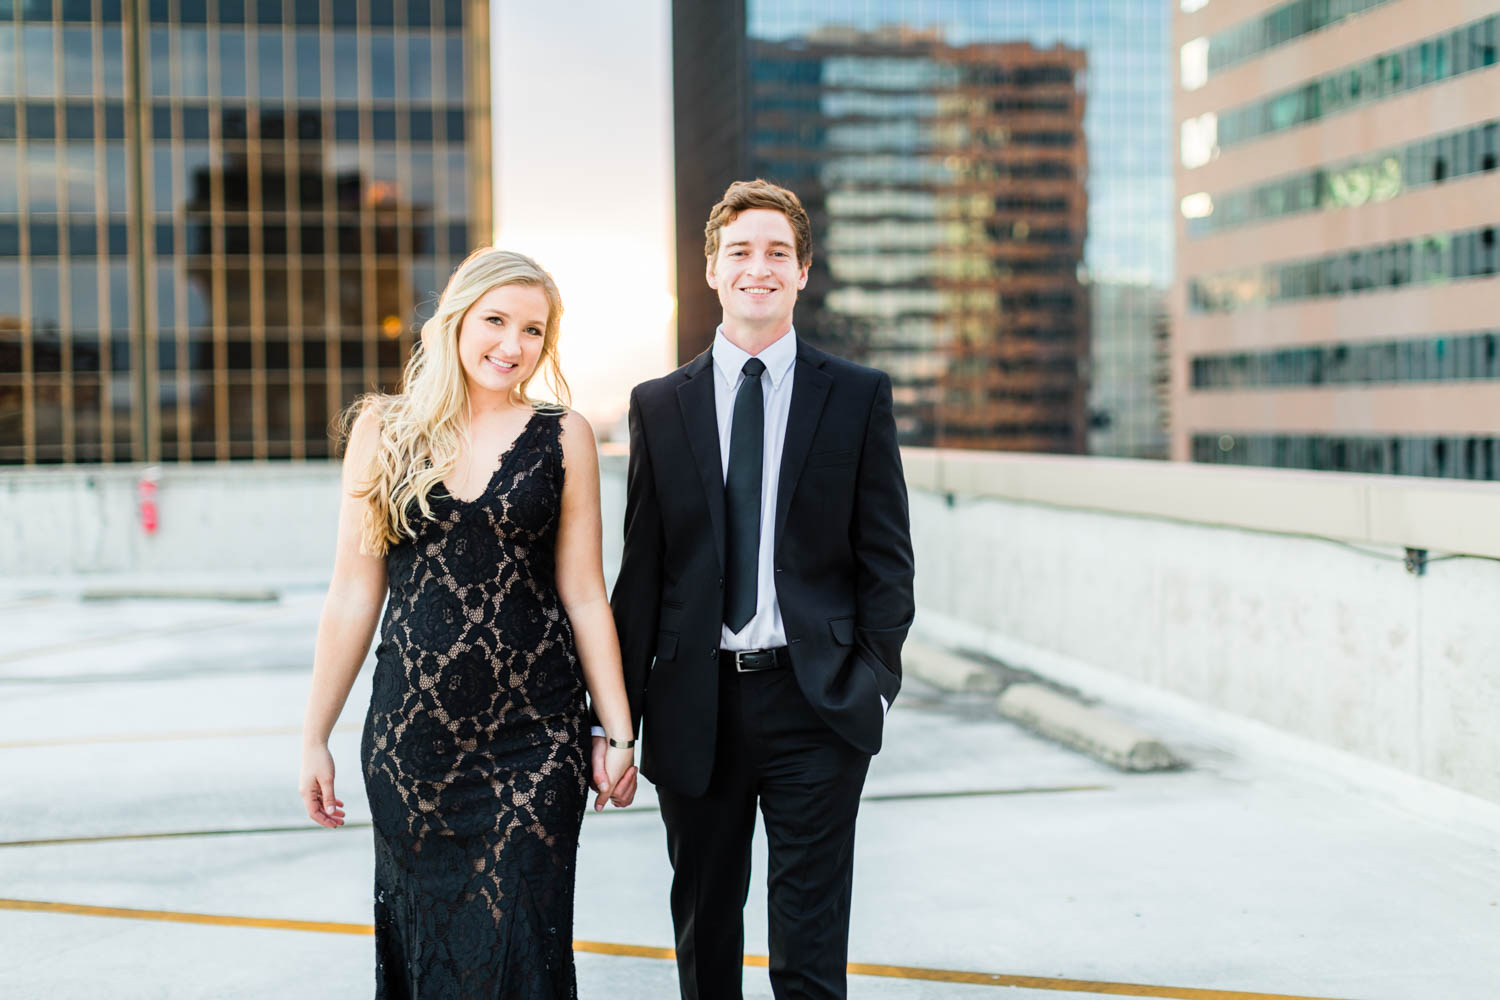 Birmingham Alabama rooftop formal engagement session during sunset, Cavin Elizabeth Photography